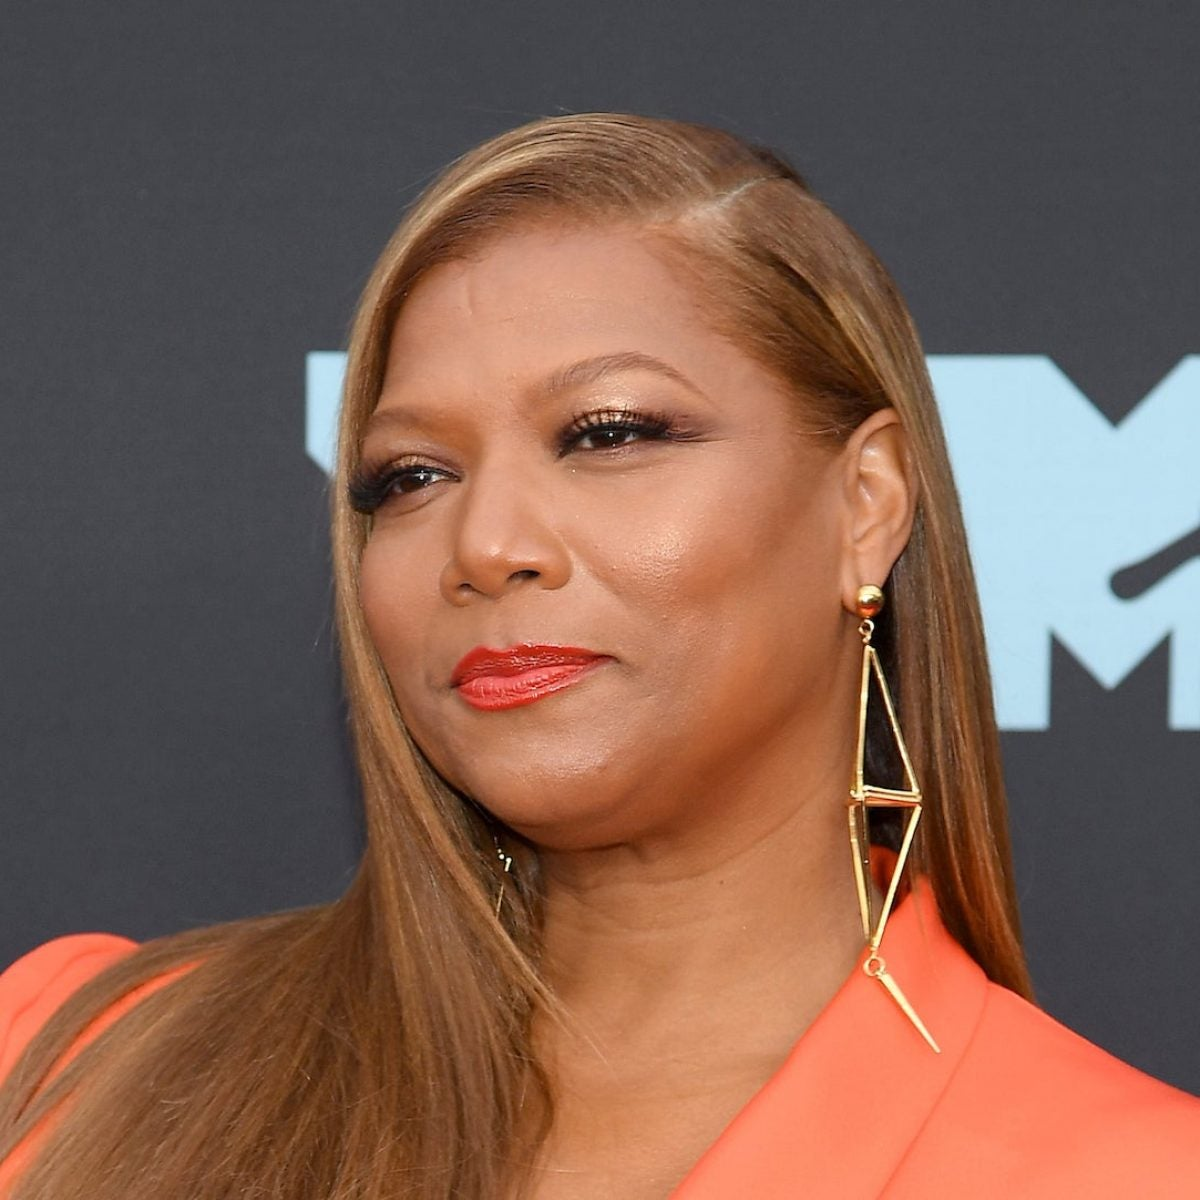 Queen Latifah Said Bullets Were Her Must-Have Item During Self-Isolation